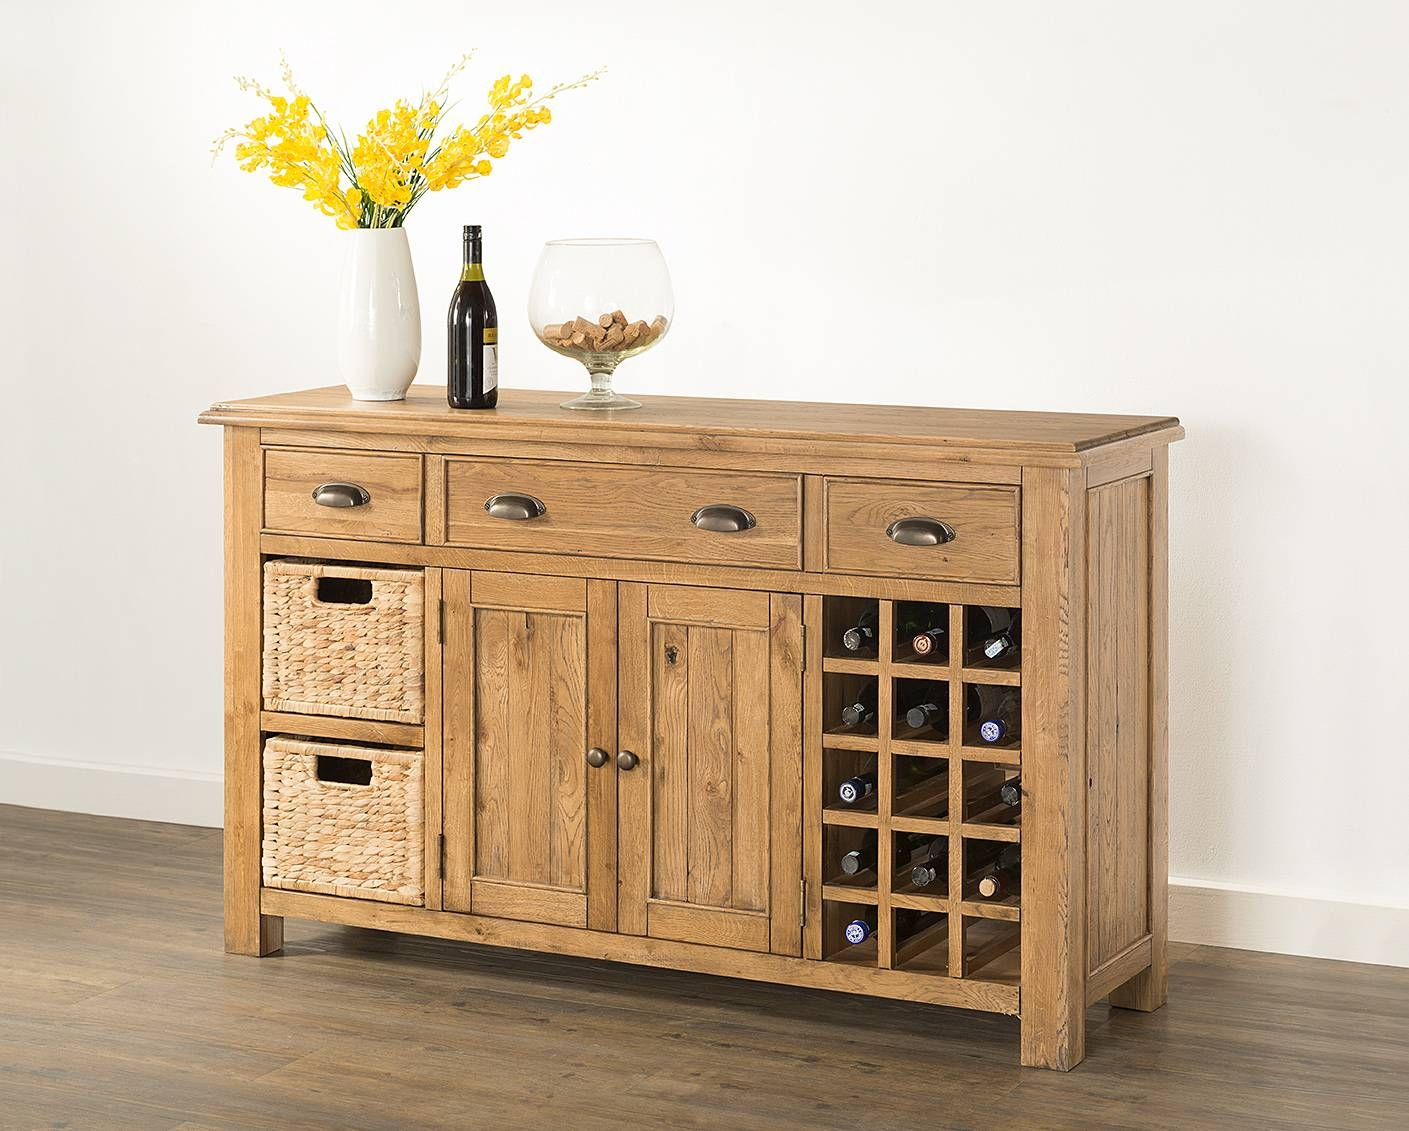 Hartford Large Sideboard With Wine Rack & Baskets (60-15) - Papaya pertaining to Sideboards With Wine Rack (Image 6 of 15)